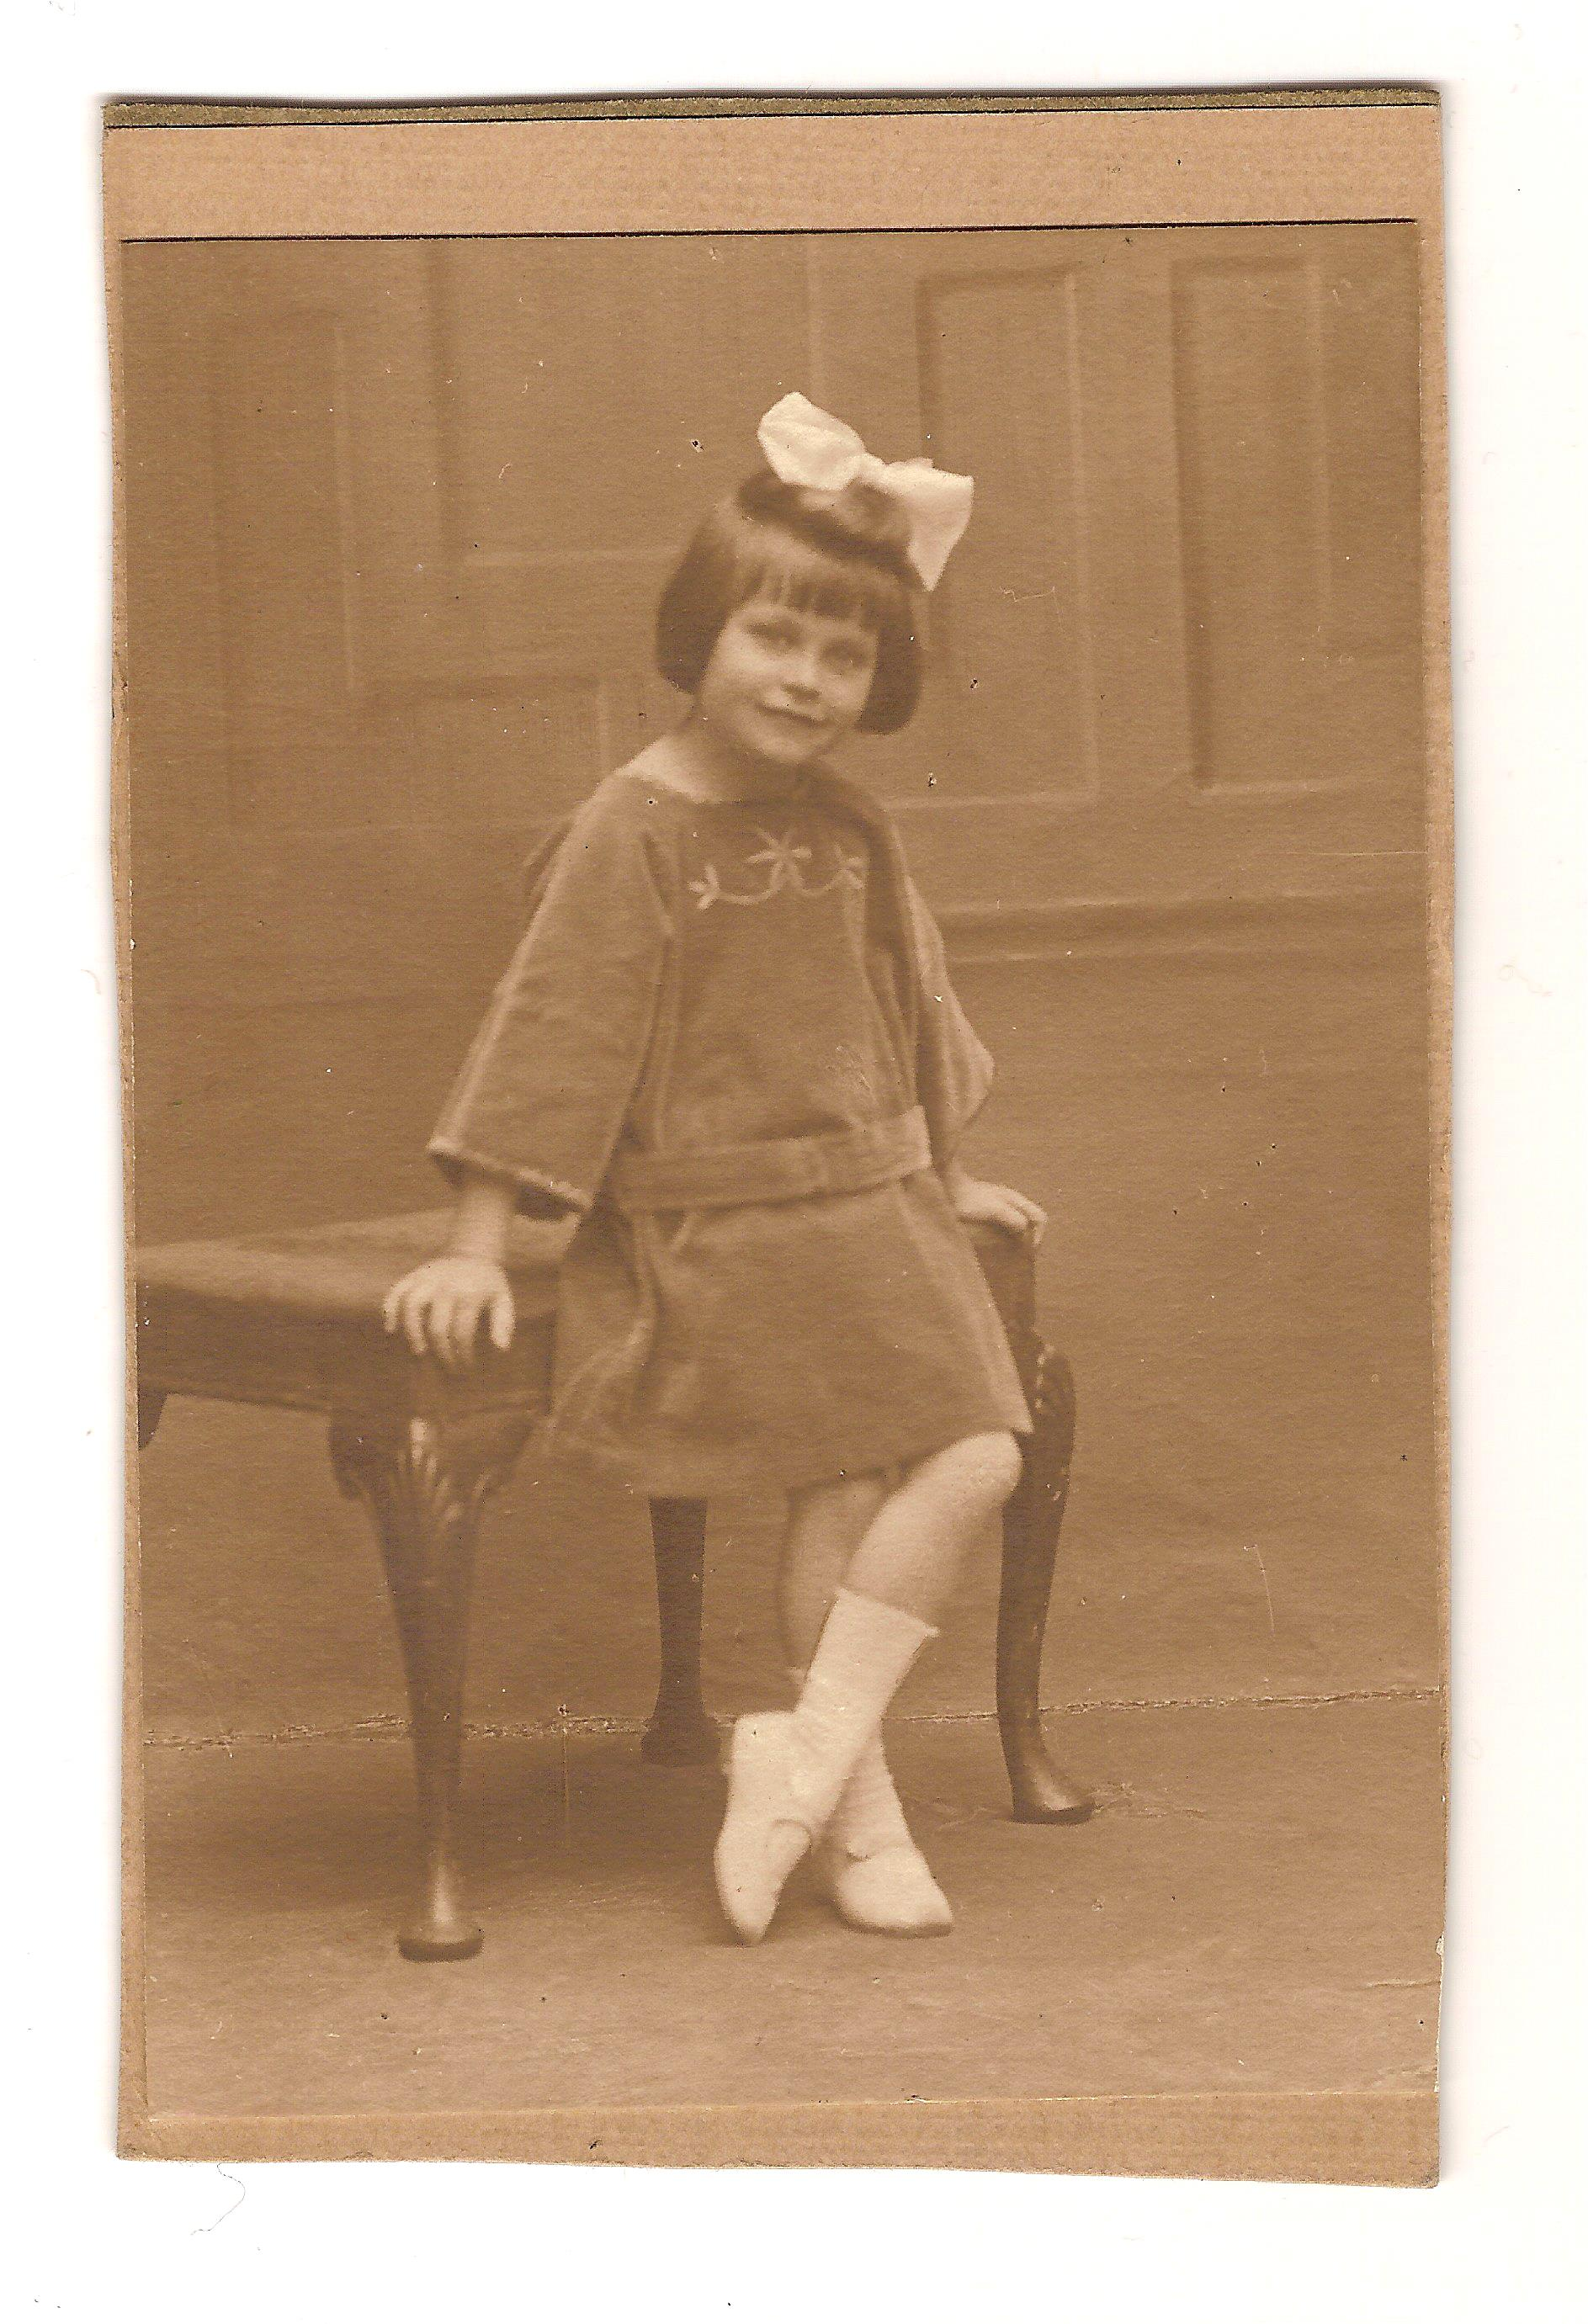 Yvonne O'Neill, aged 4 years